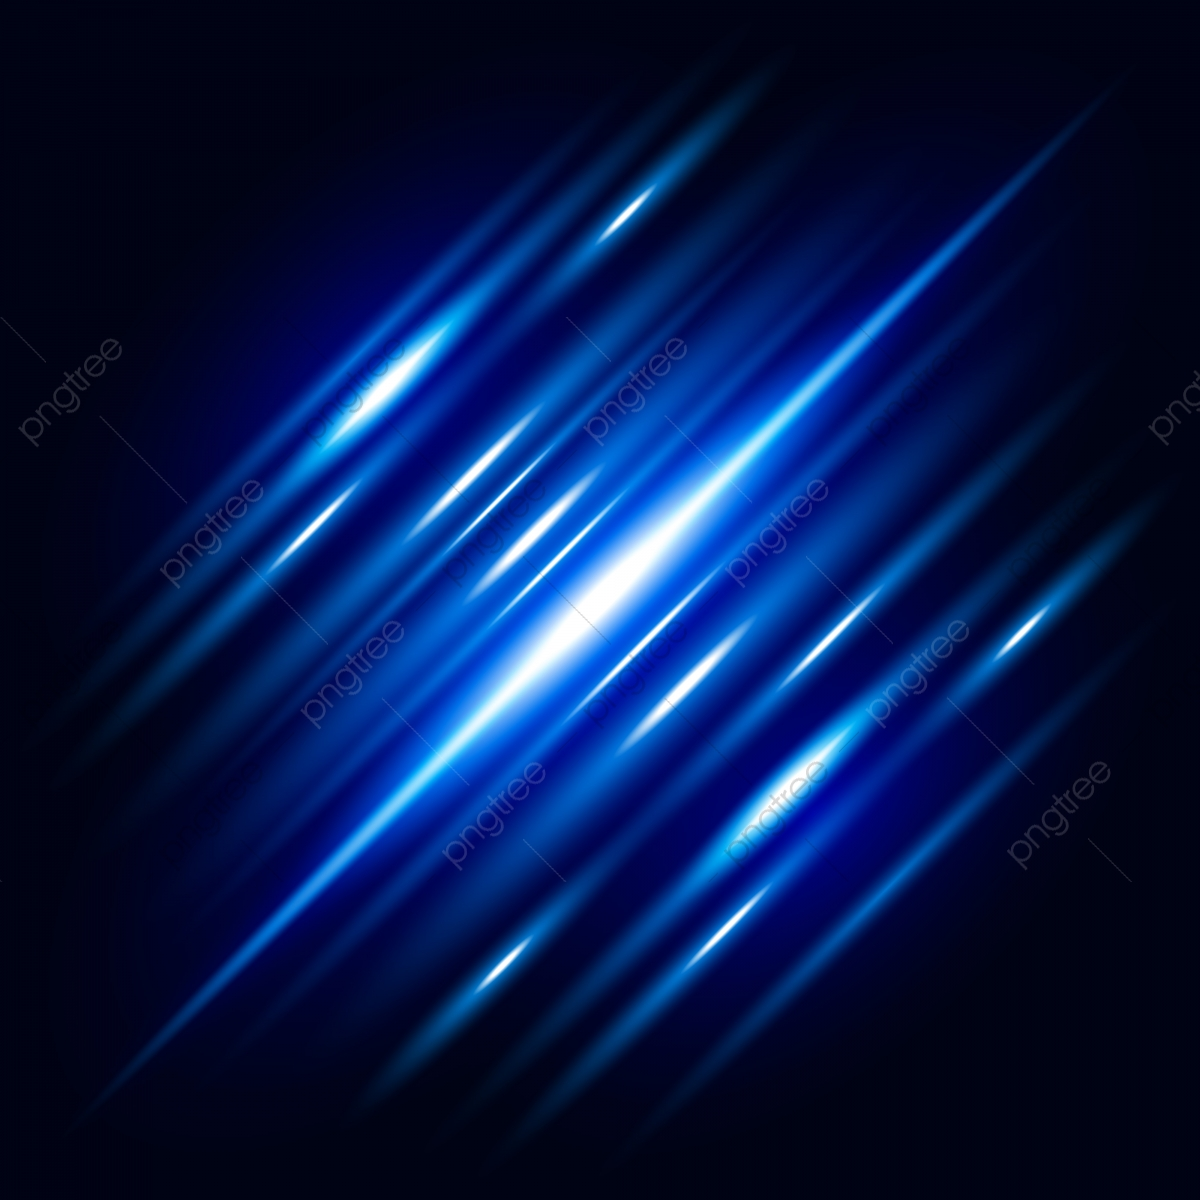 Abstract Blue Light Effect With Shine Bright Vector